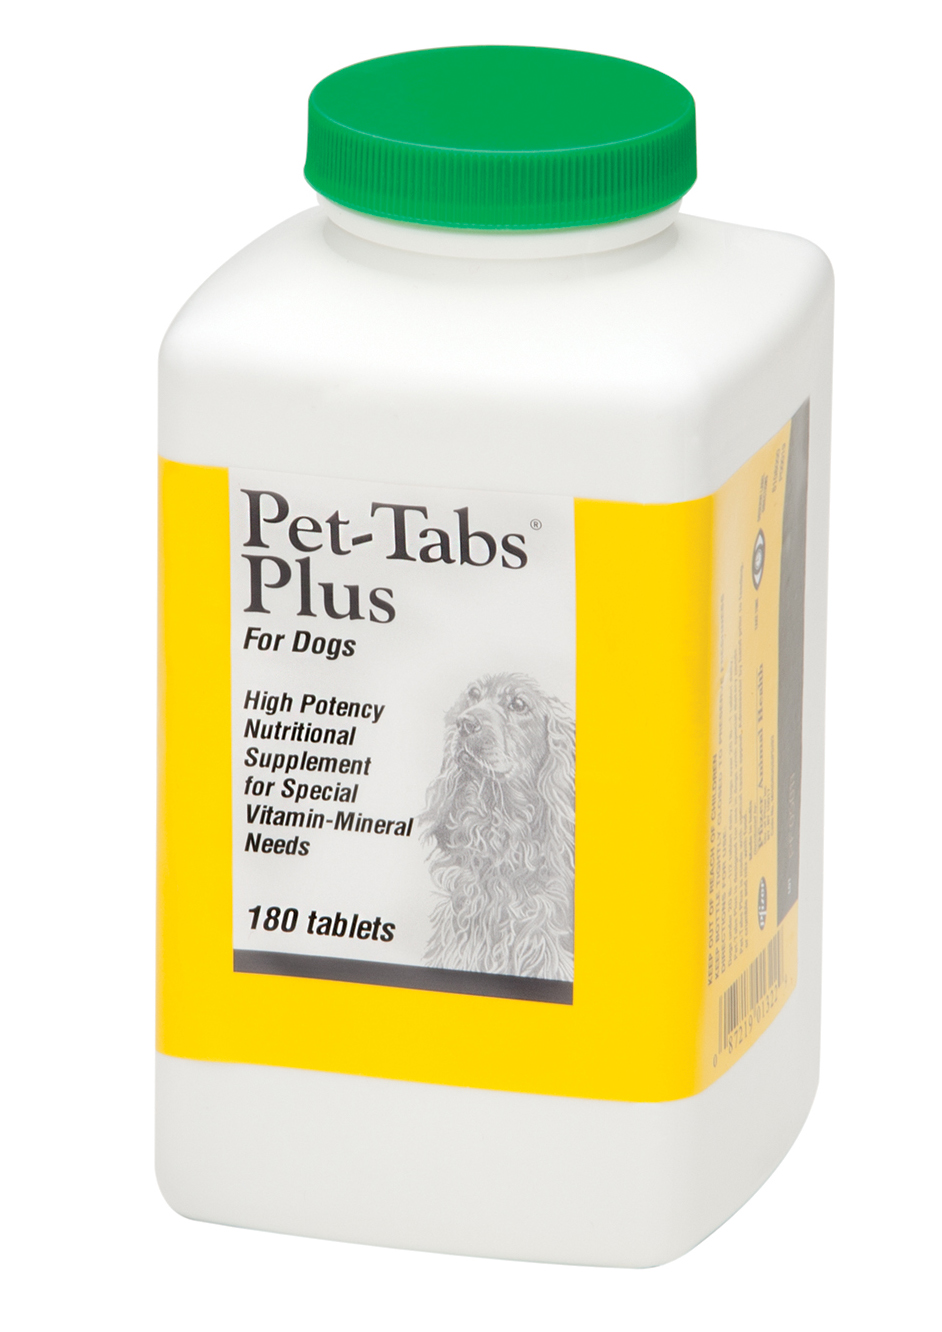 PET-TAB PLUS